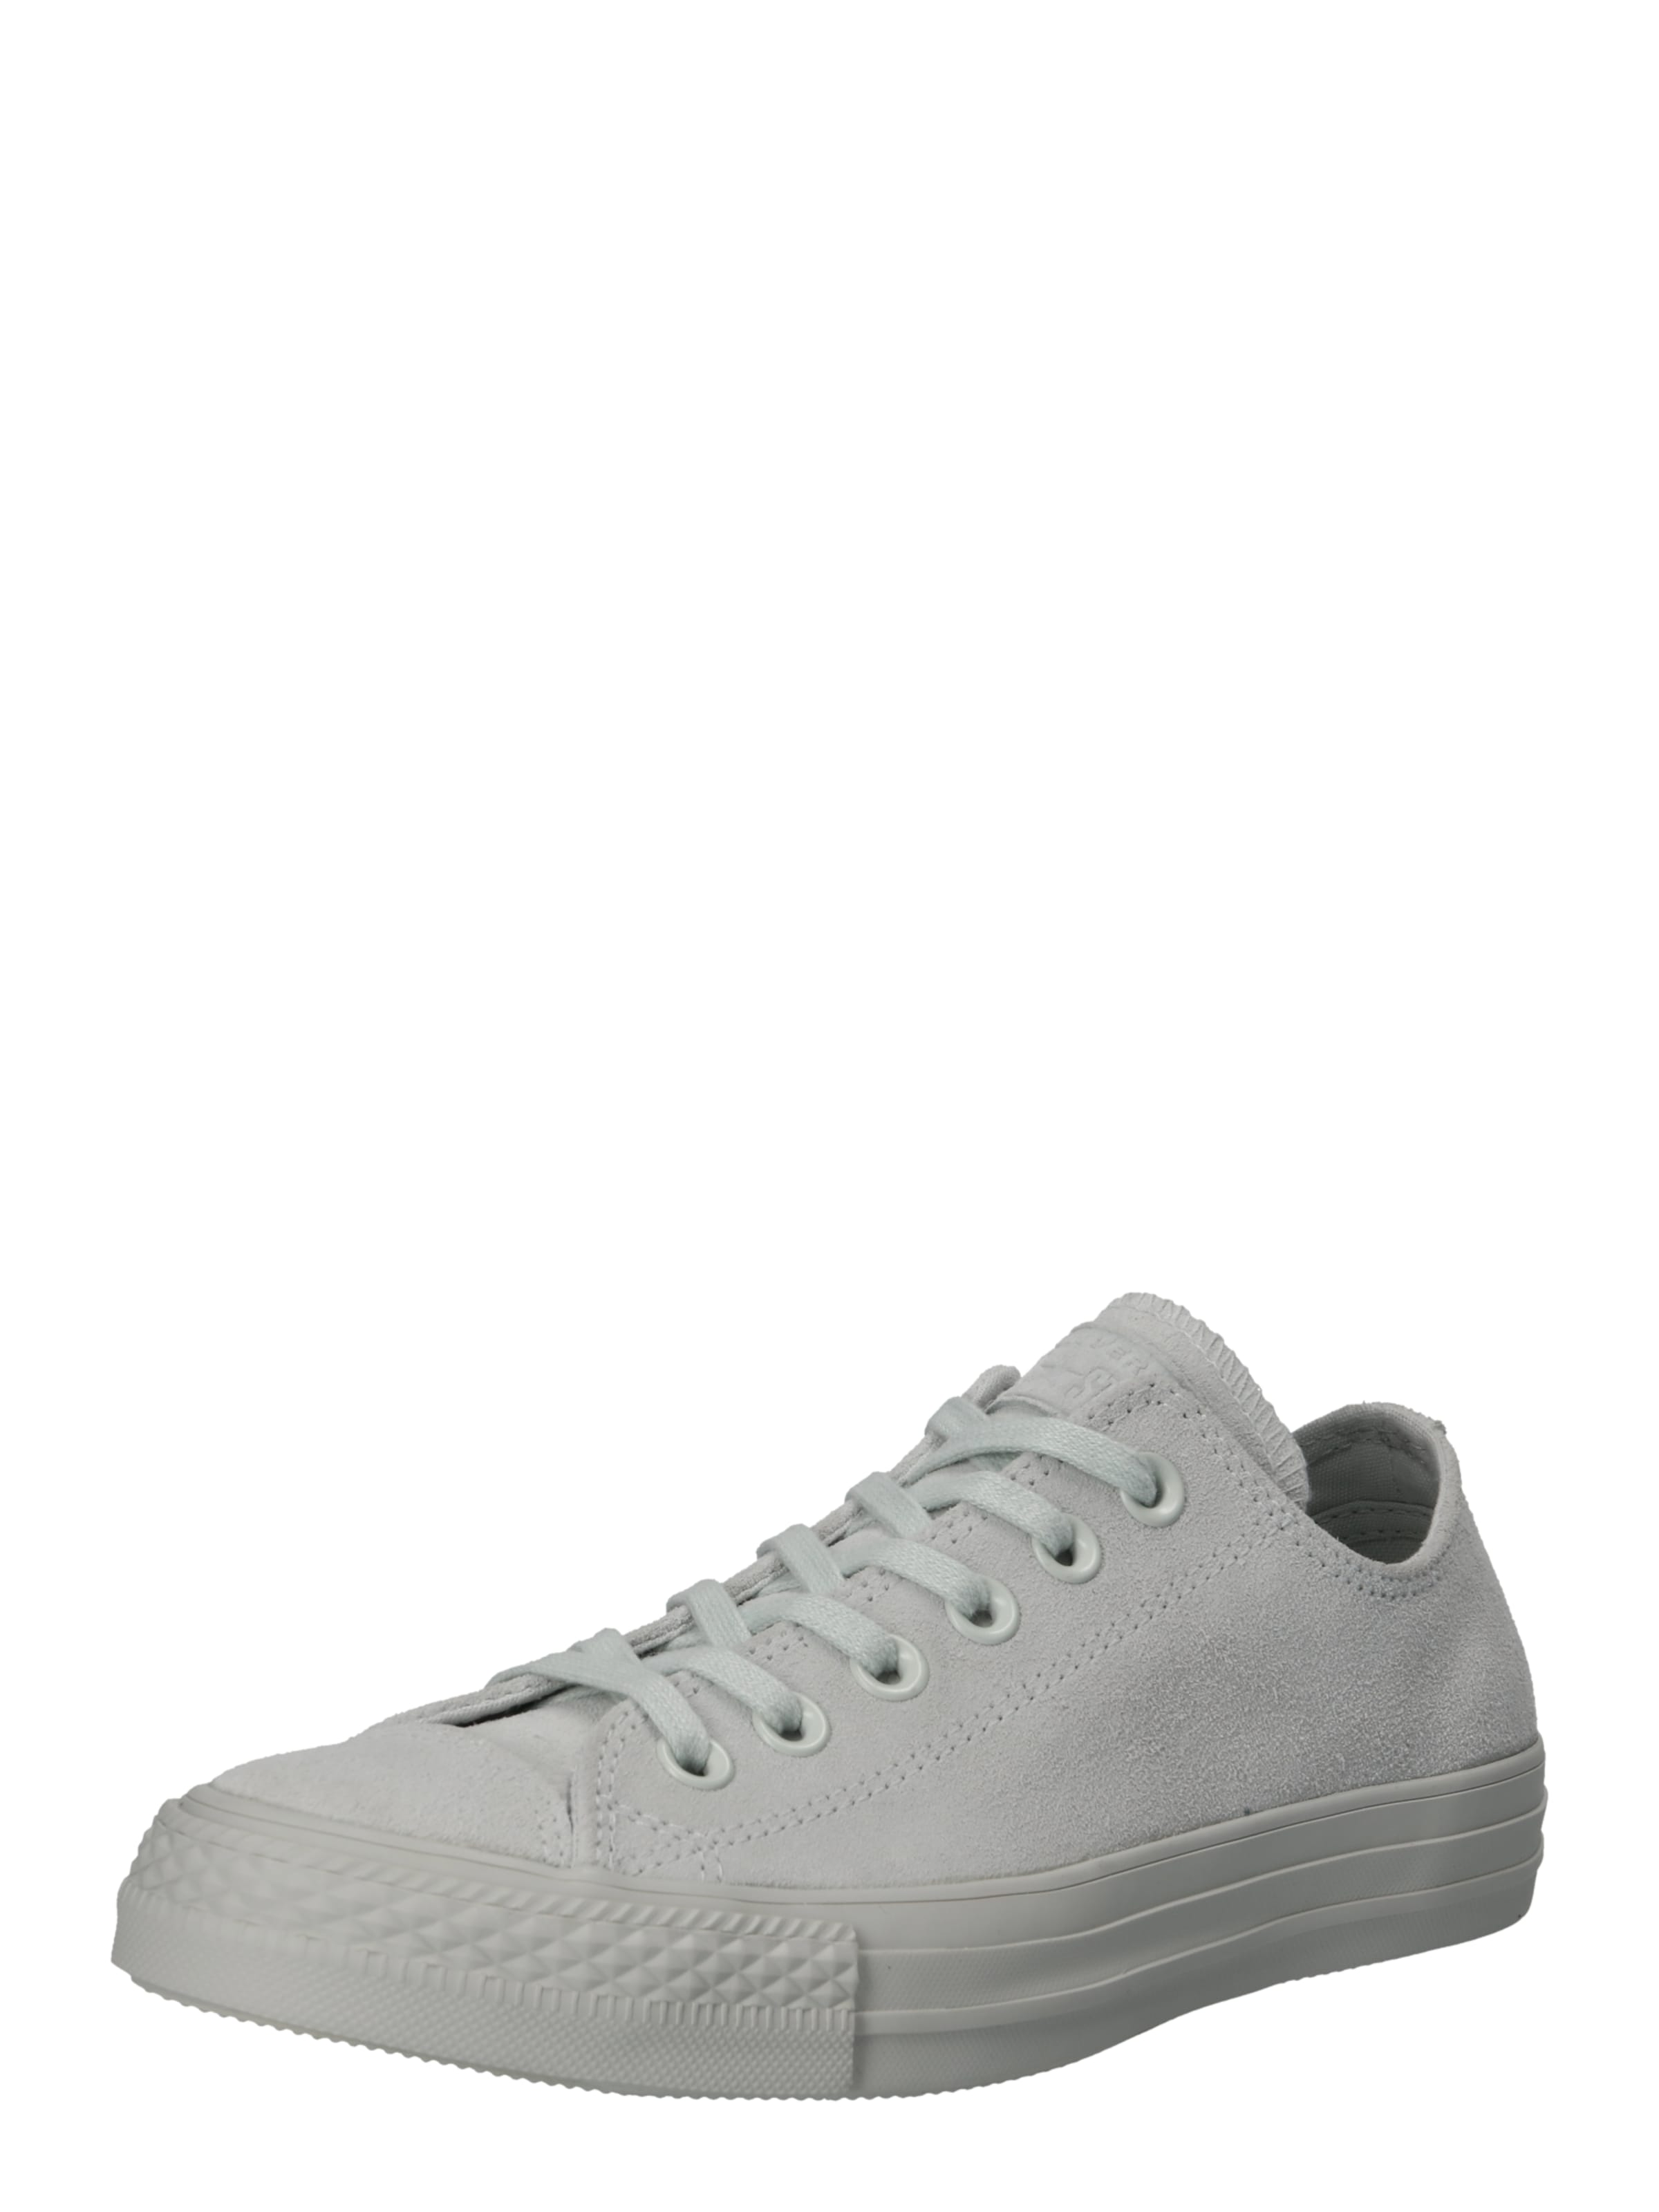 CONVERSE Sneaker  CHUCK TAYLOR ALL STAR - OX